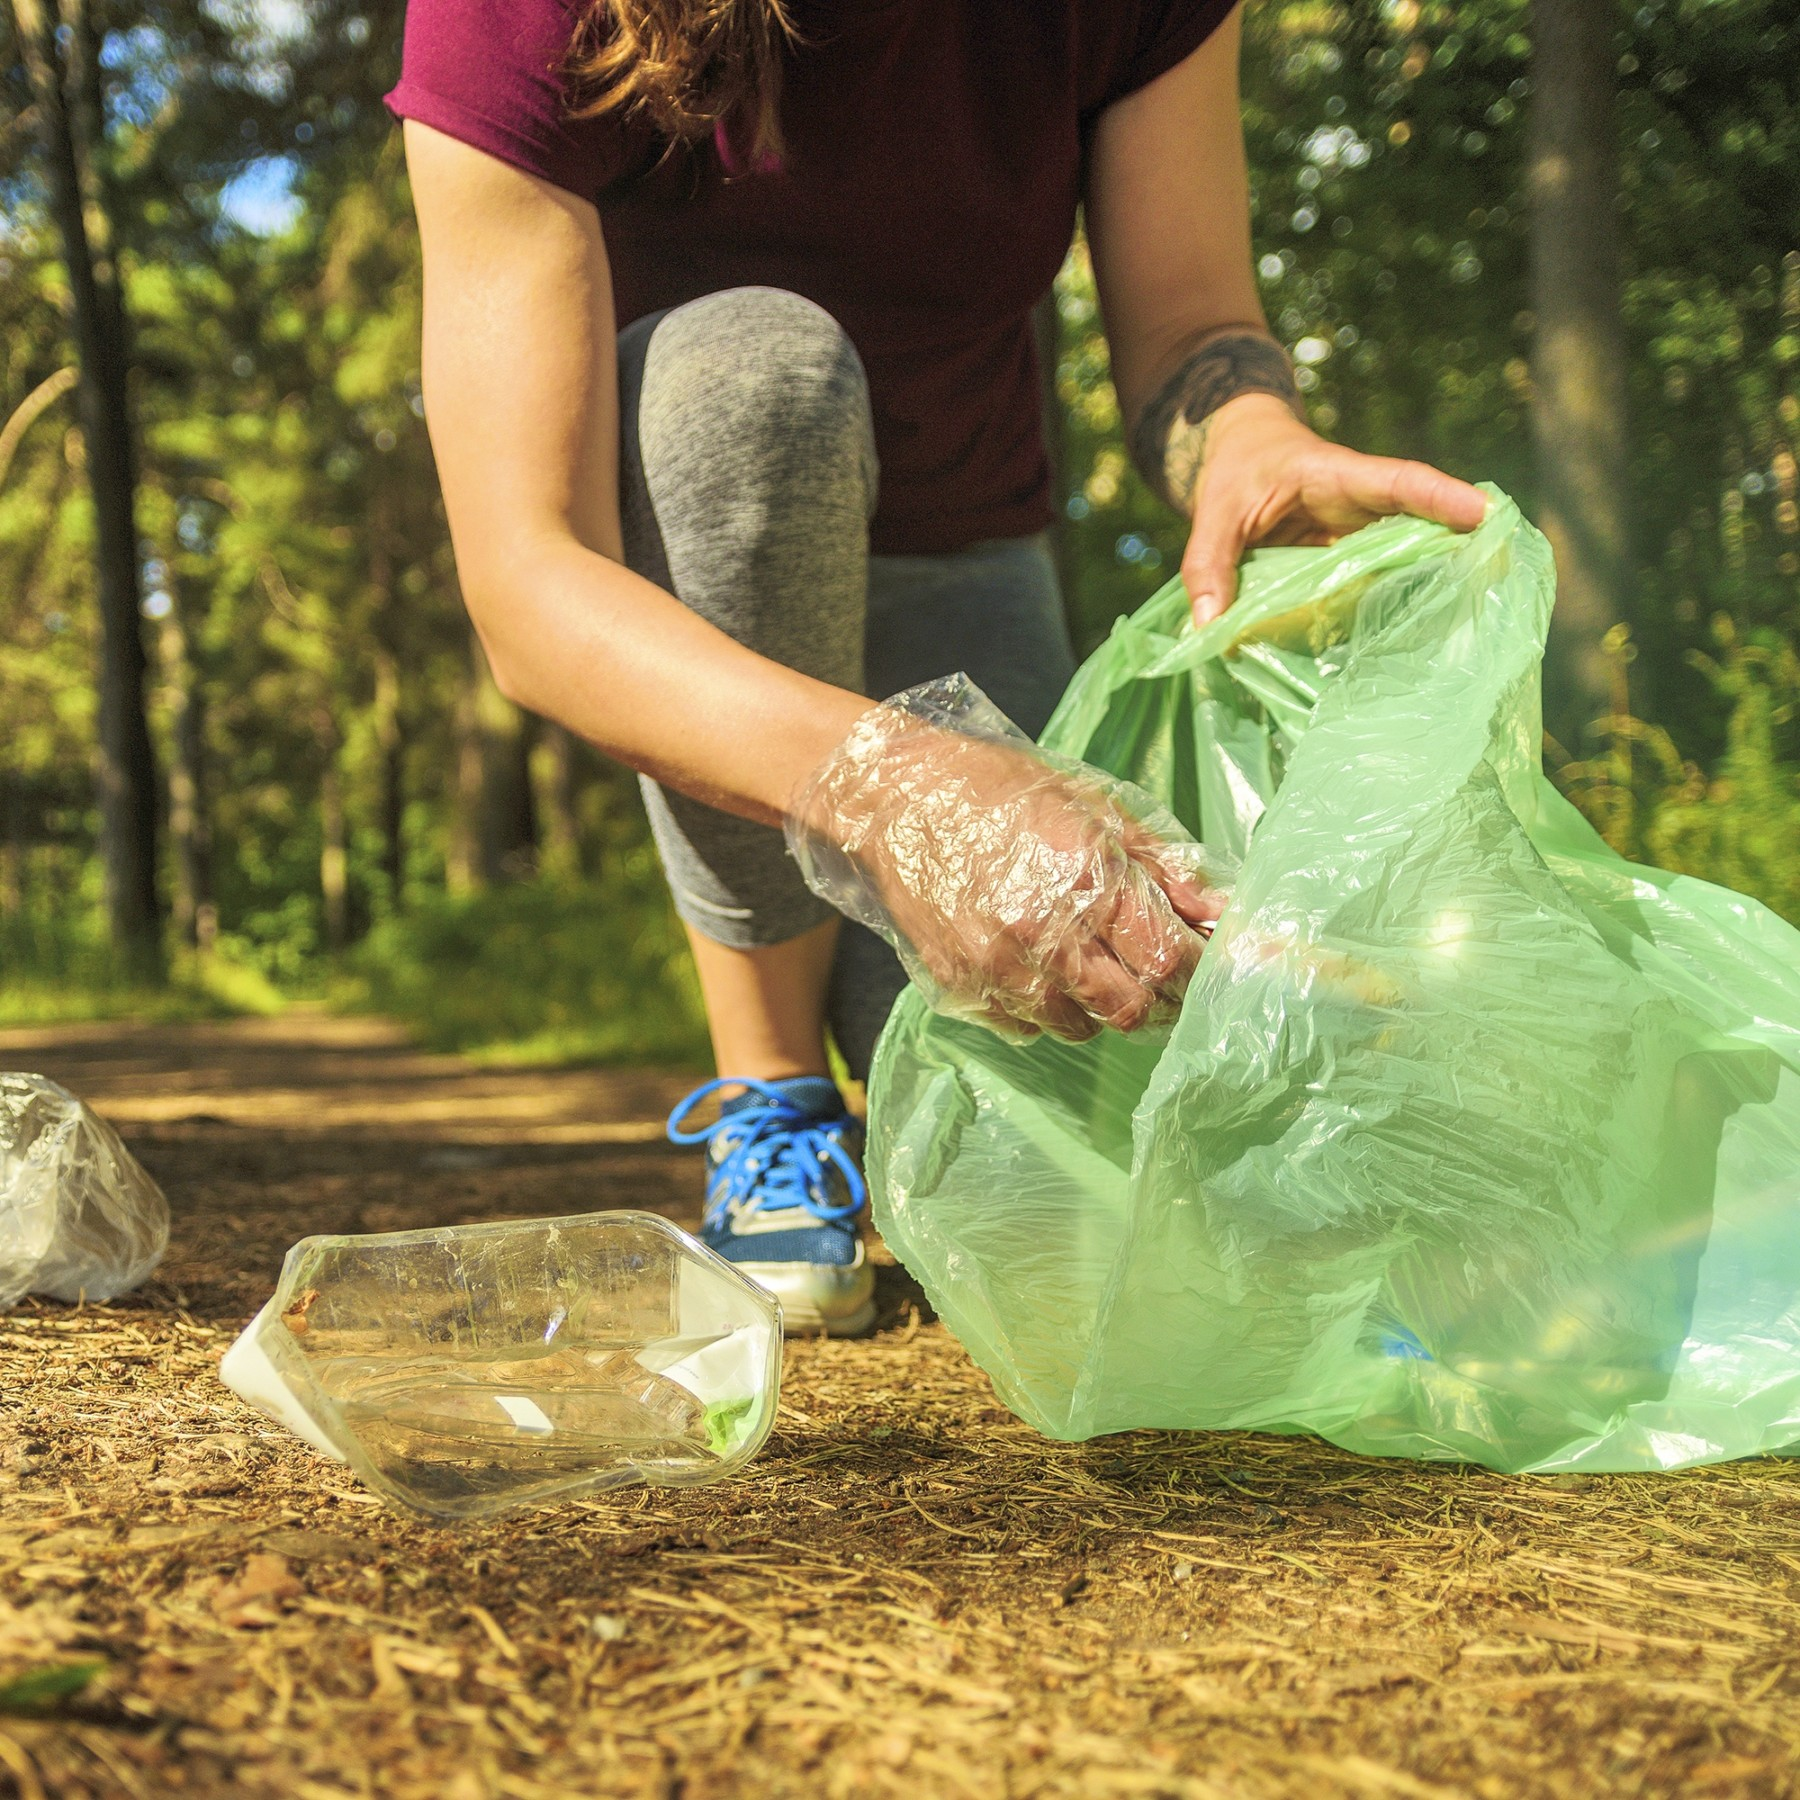 Finnish innovations for overcoming plastic waste - thisisFINLAND